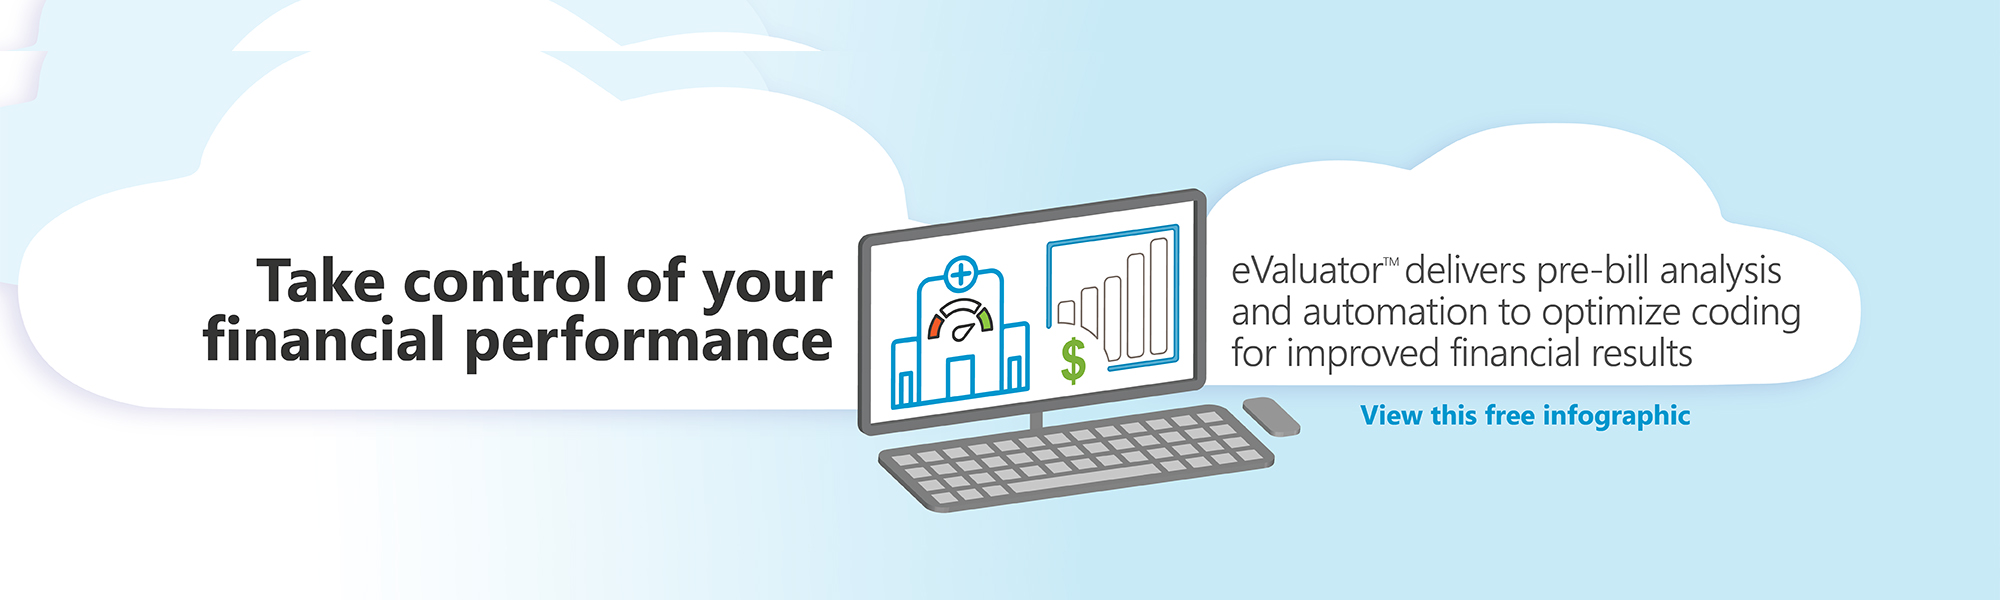 Take Control of Your Financial Performance with eValuator™